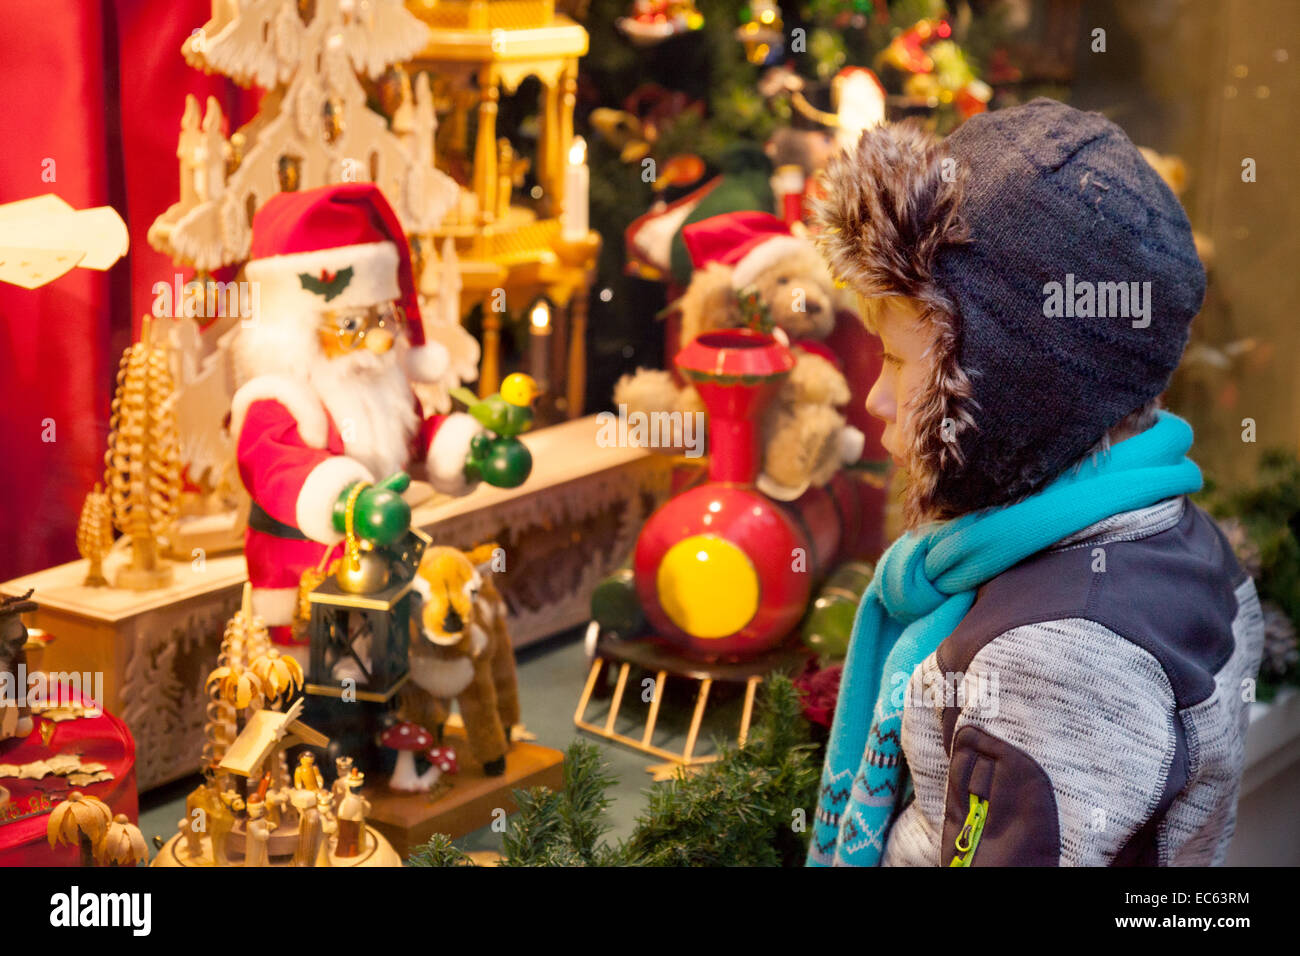 Toys For Boys Age 10 In Russian : A young caucasian boy age years looking at presents in